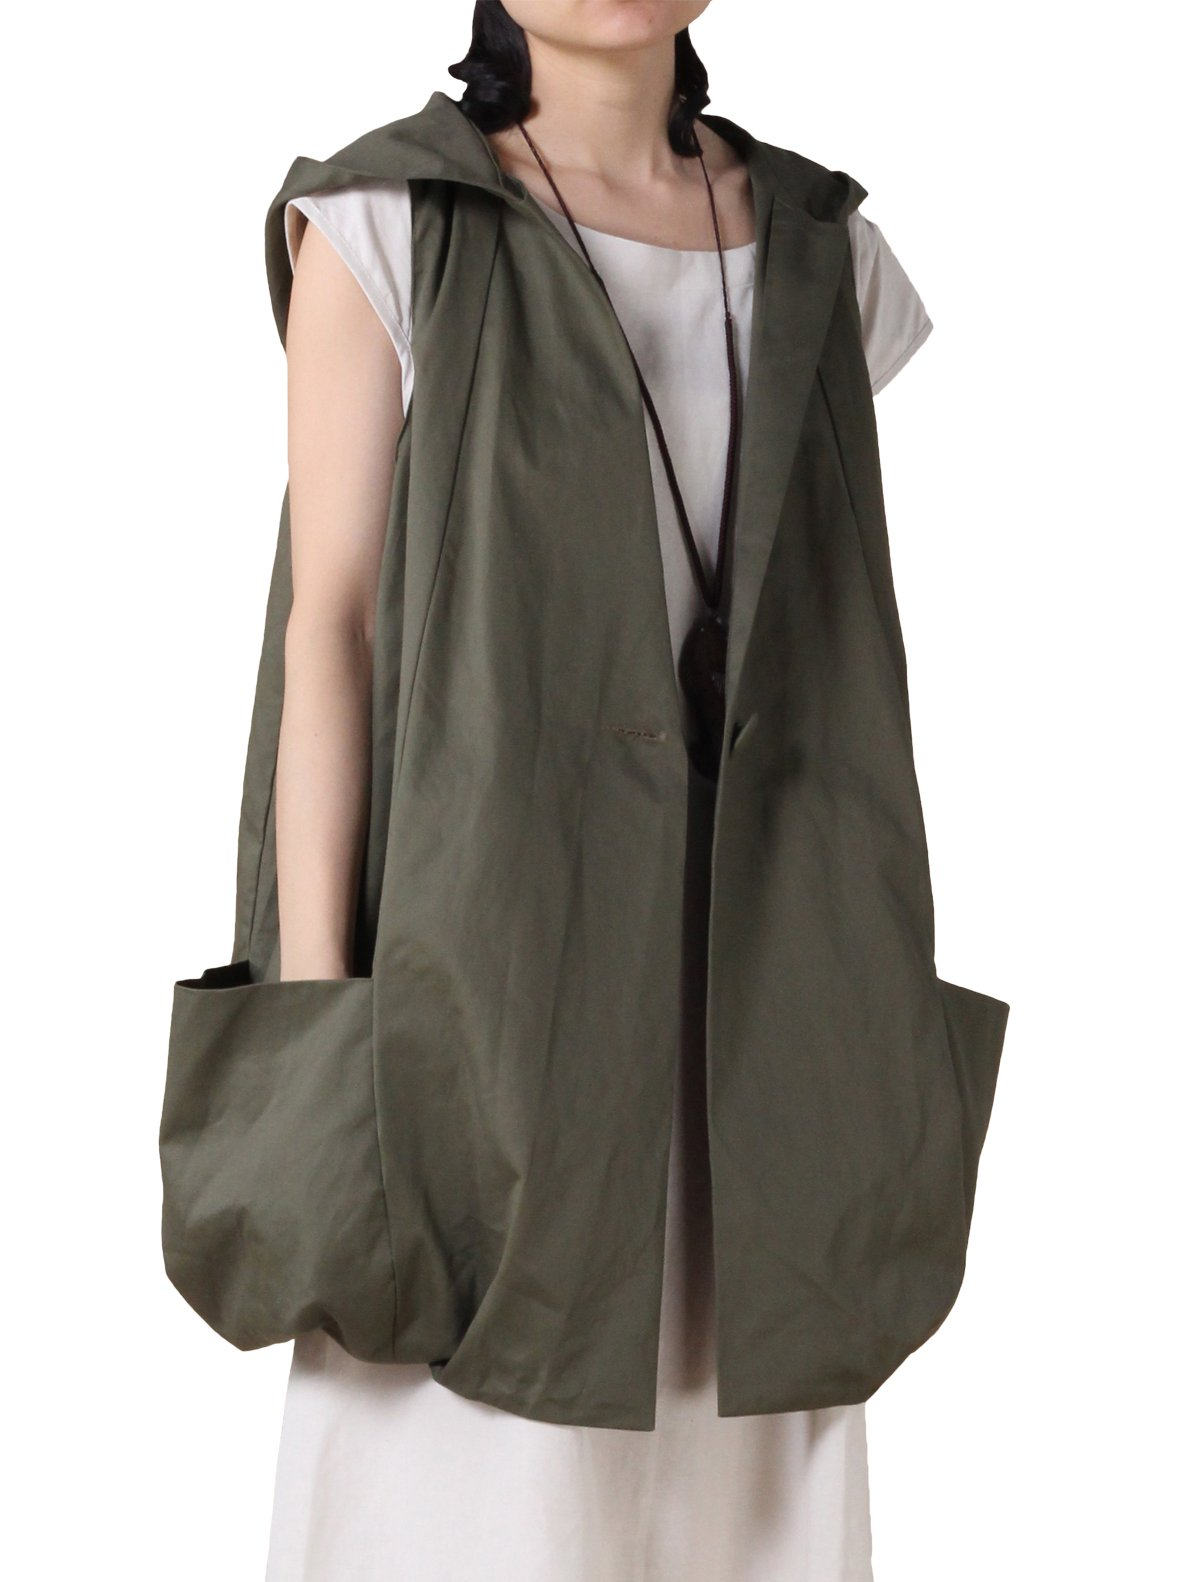 Mordenmiss Women's Sleeveless Coat Vest Hoodie Waistcoat Anoraks with Big Pockets (Medium, Style 2-Army Green)